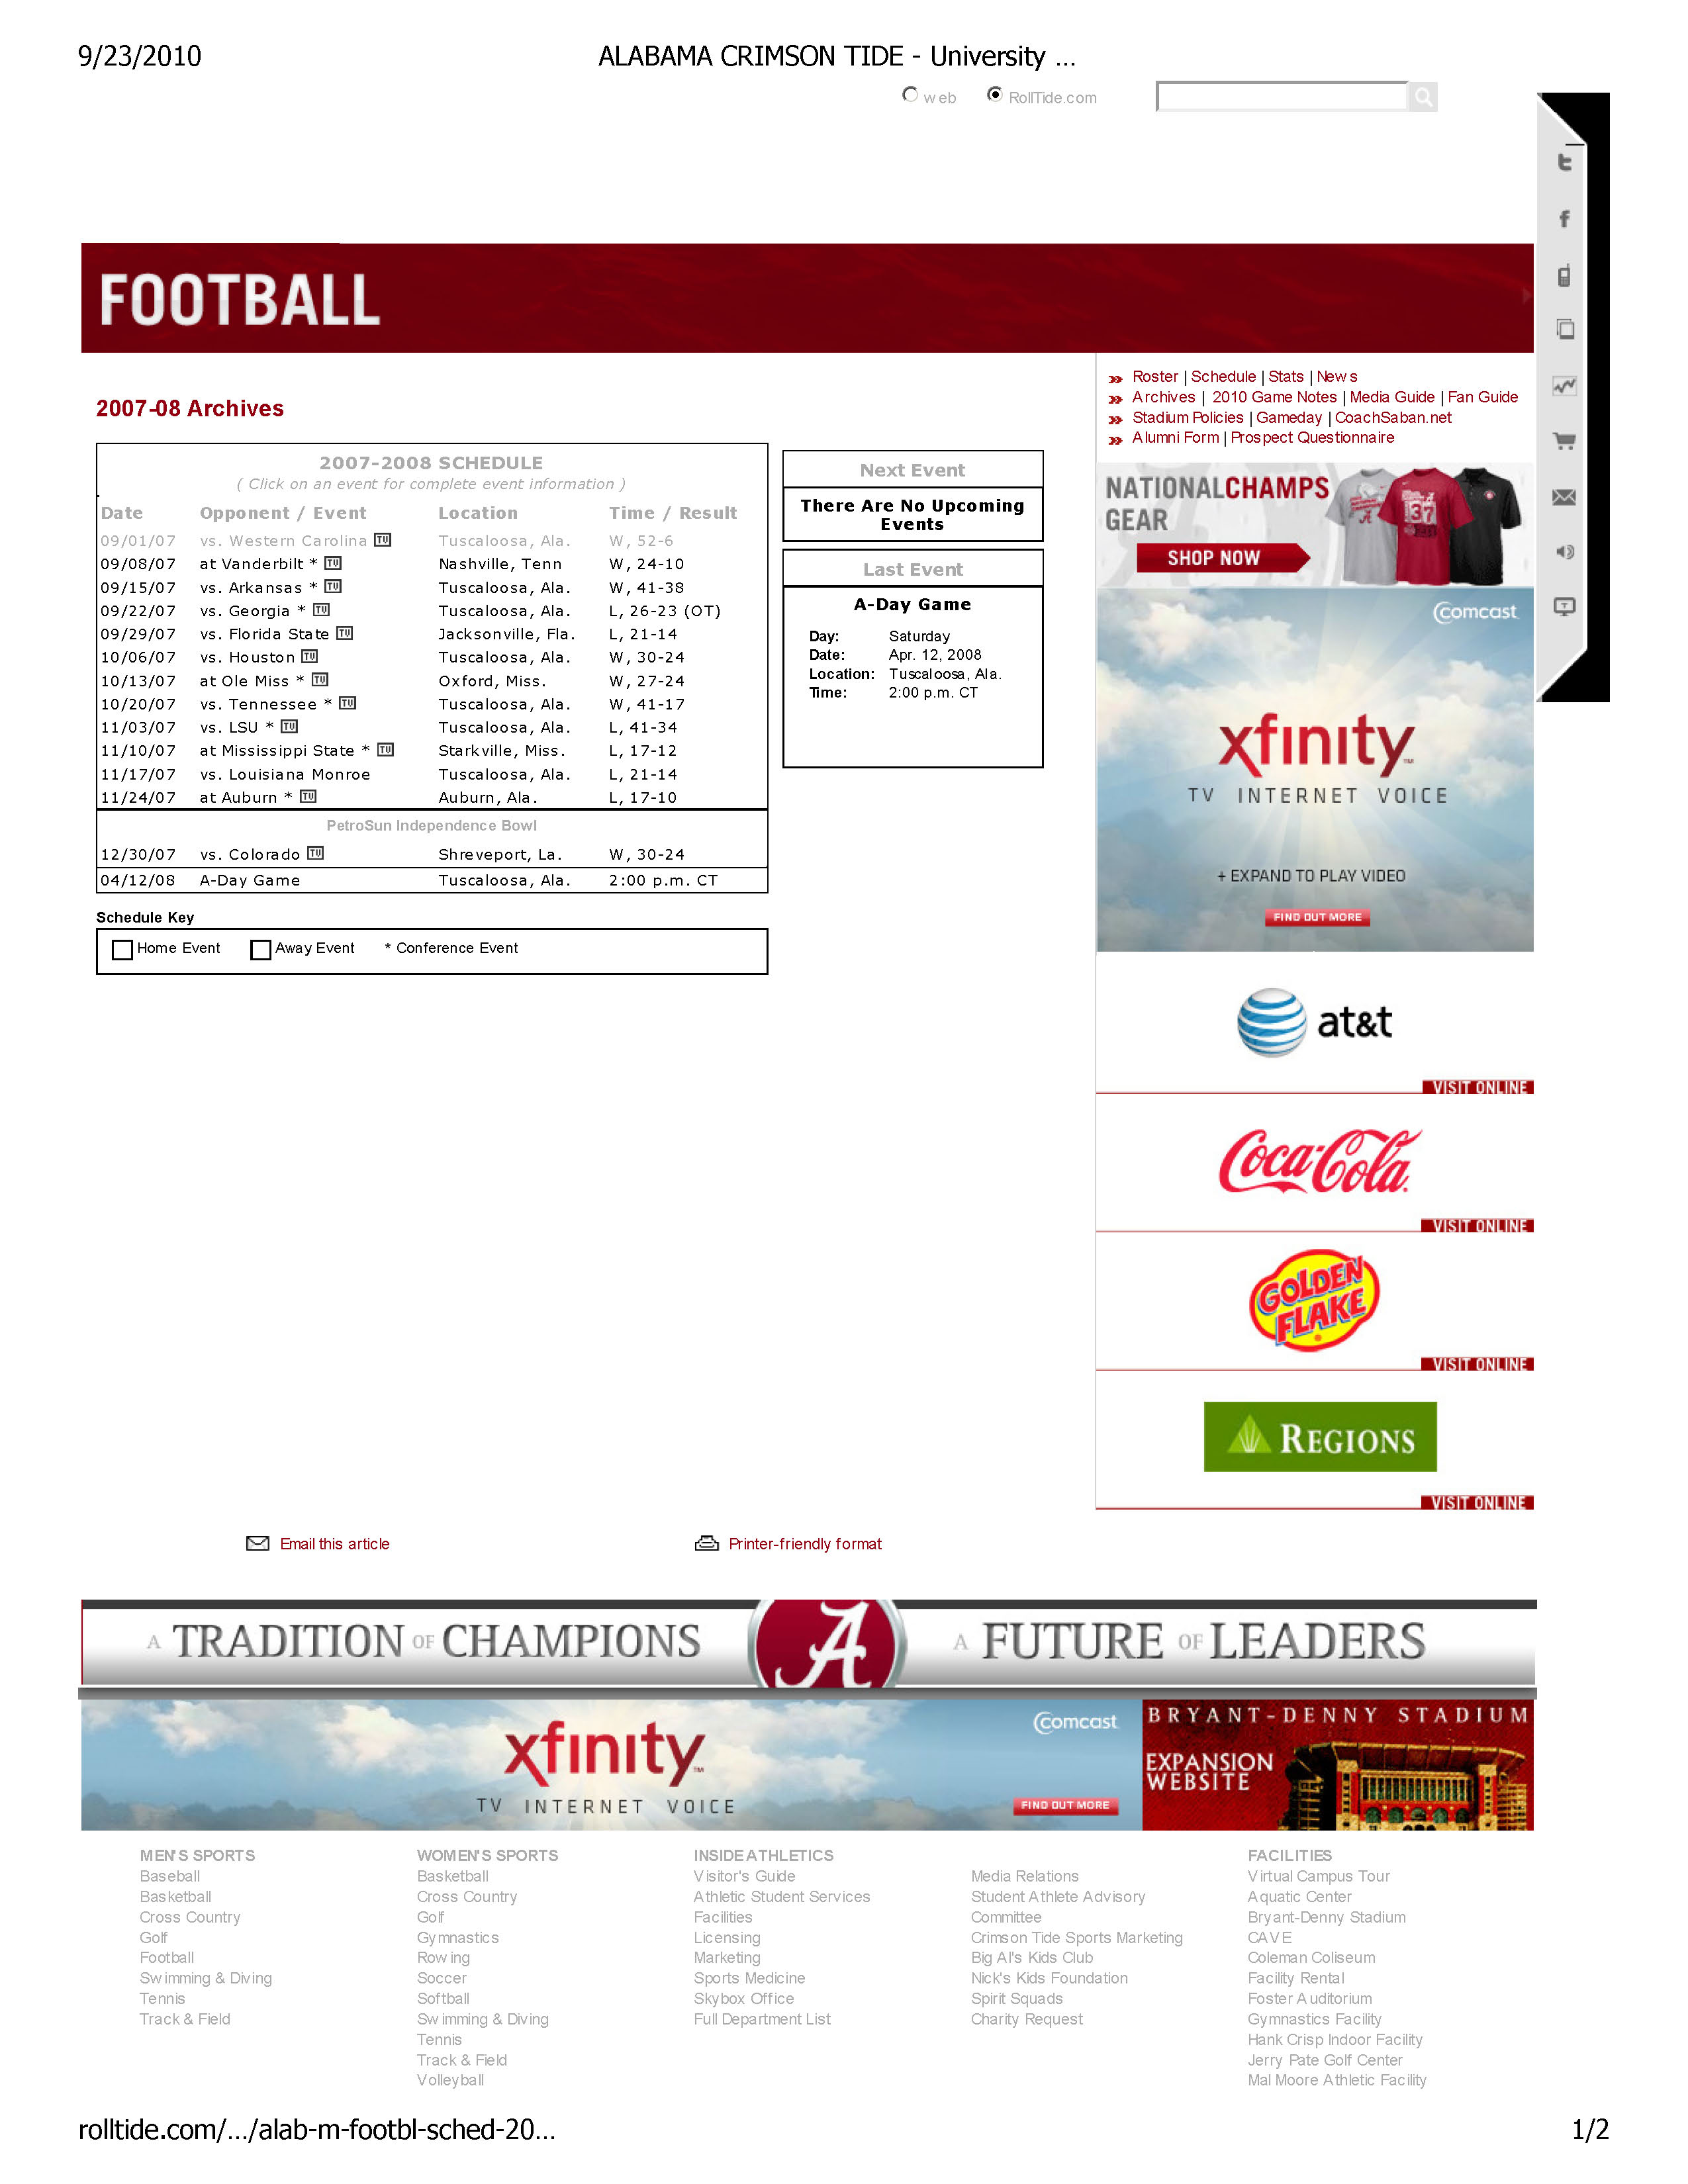 ALABAMA CRIMSON TIDE - University of Alabama Official Athletic Site - Football 2007-2008 Football Archives_Page_1